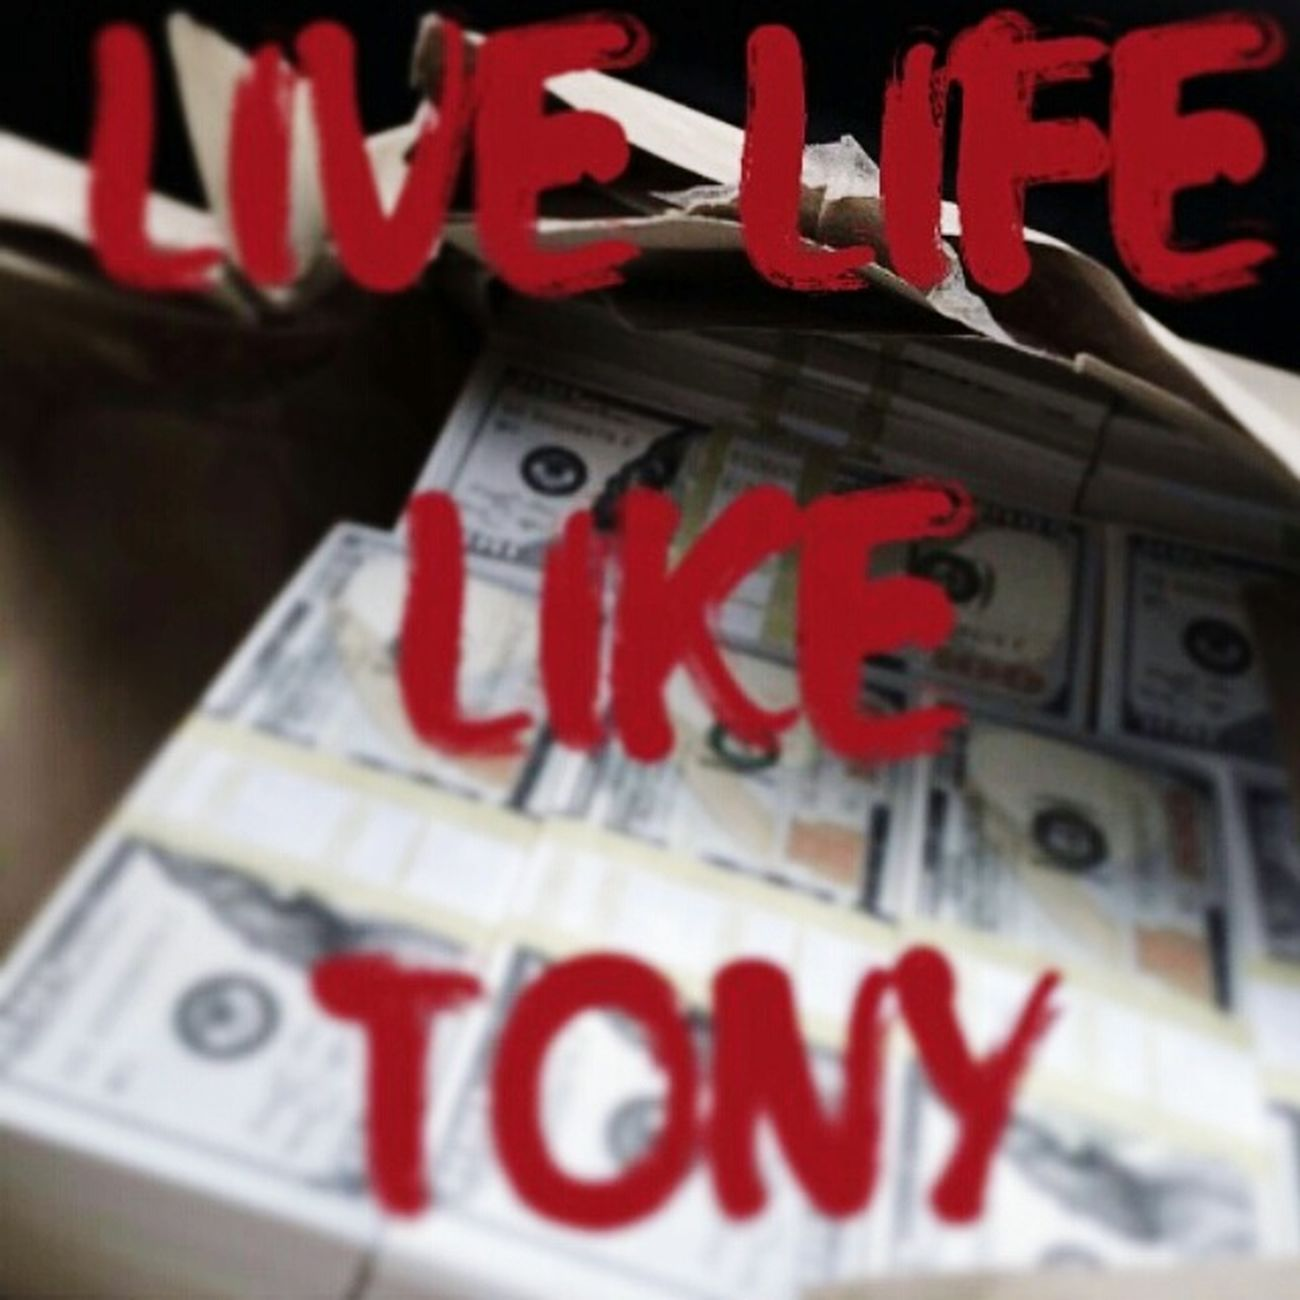 Live like im tony video coming soon Videoshoot Rapper Harlem  FLStudio Reasons BEATS Falowforfalow Trap Music TonyMontana